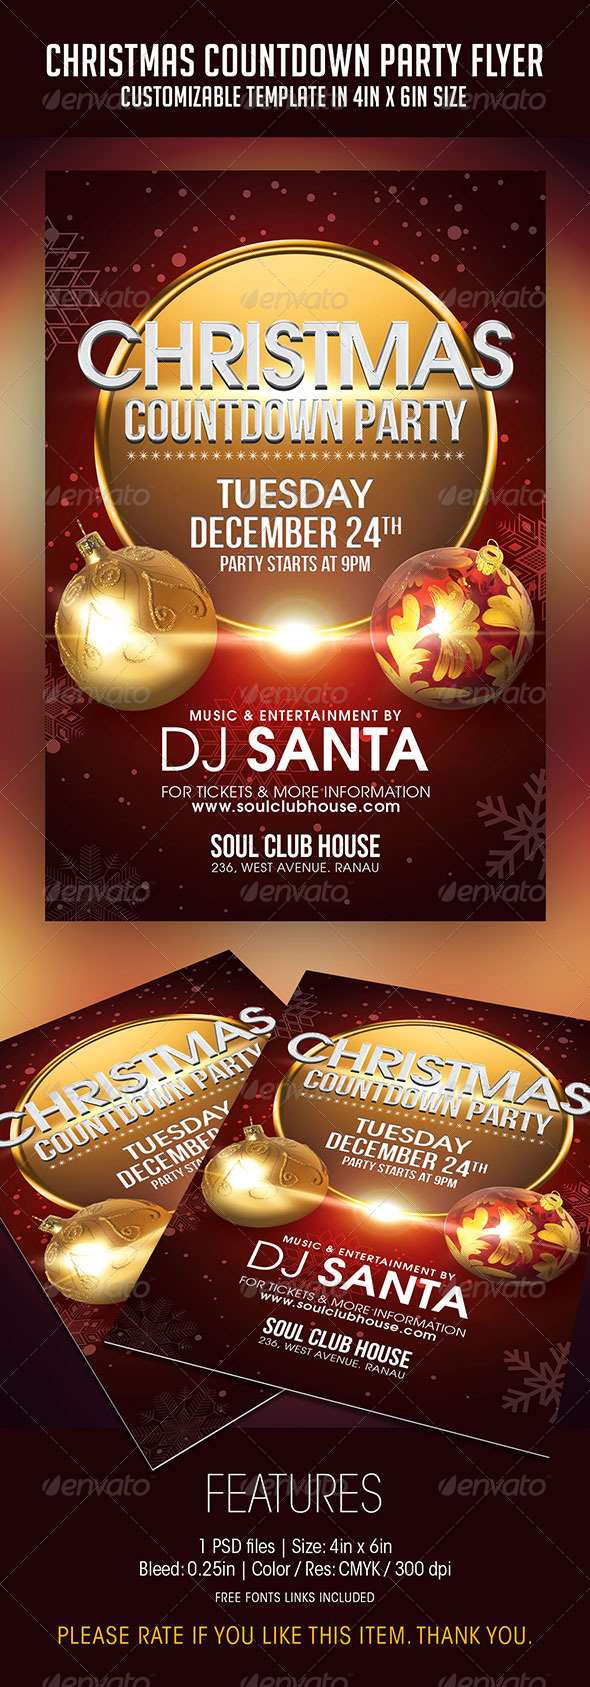 Christmas Countdown Party Flyer - Clubs & Parties Events